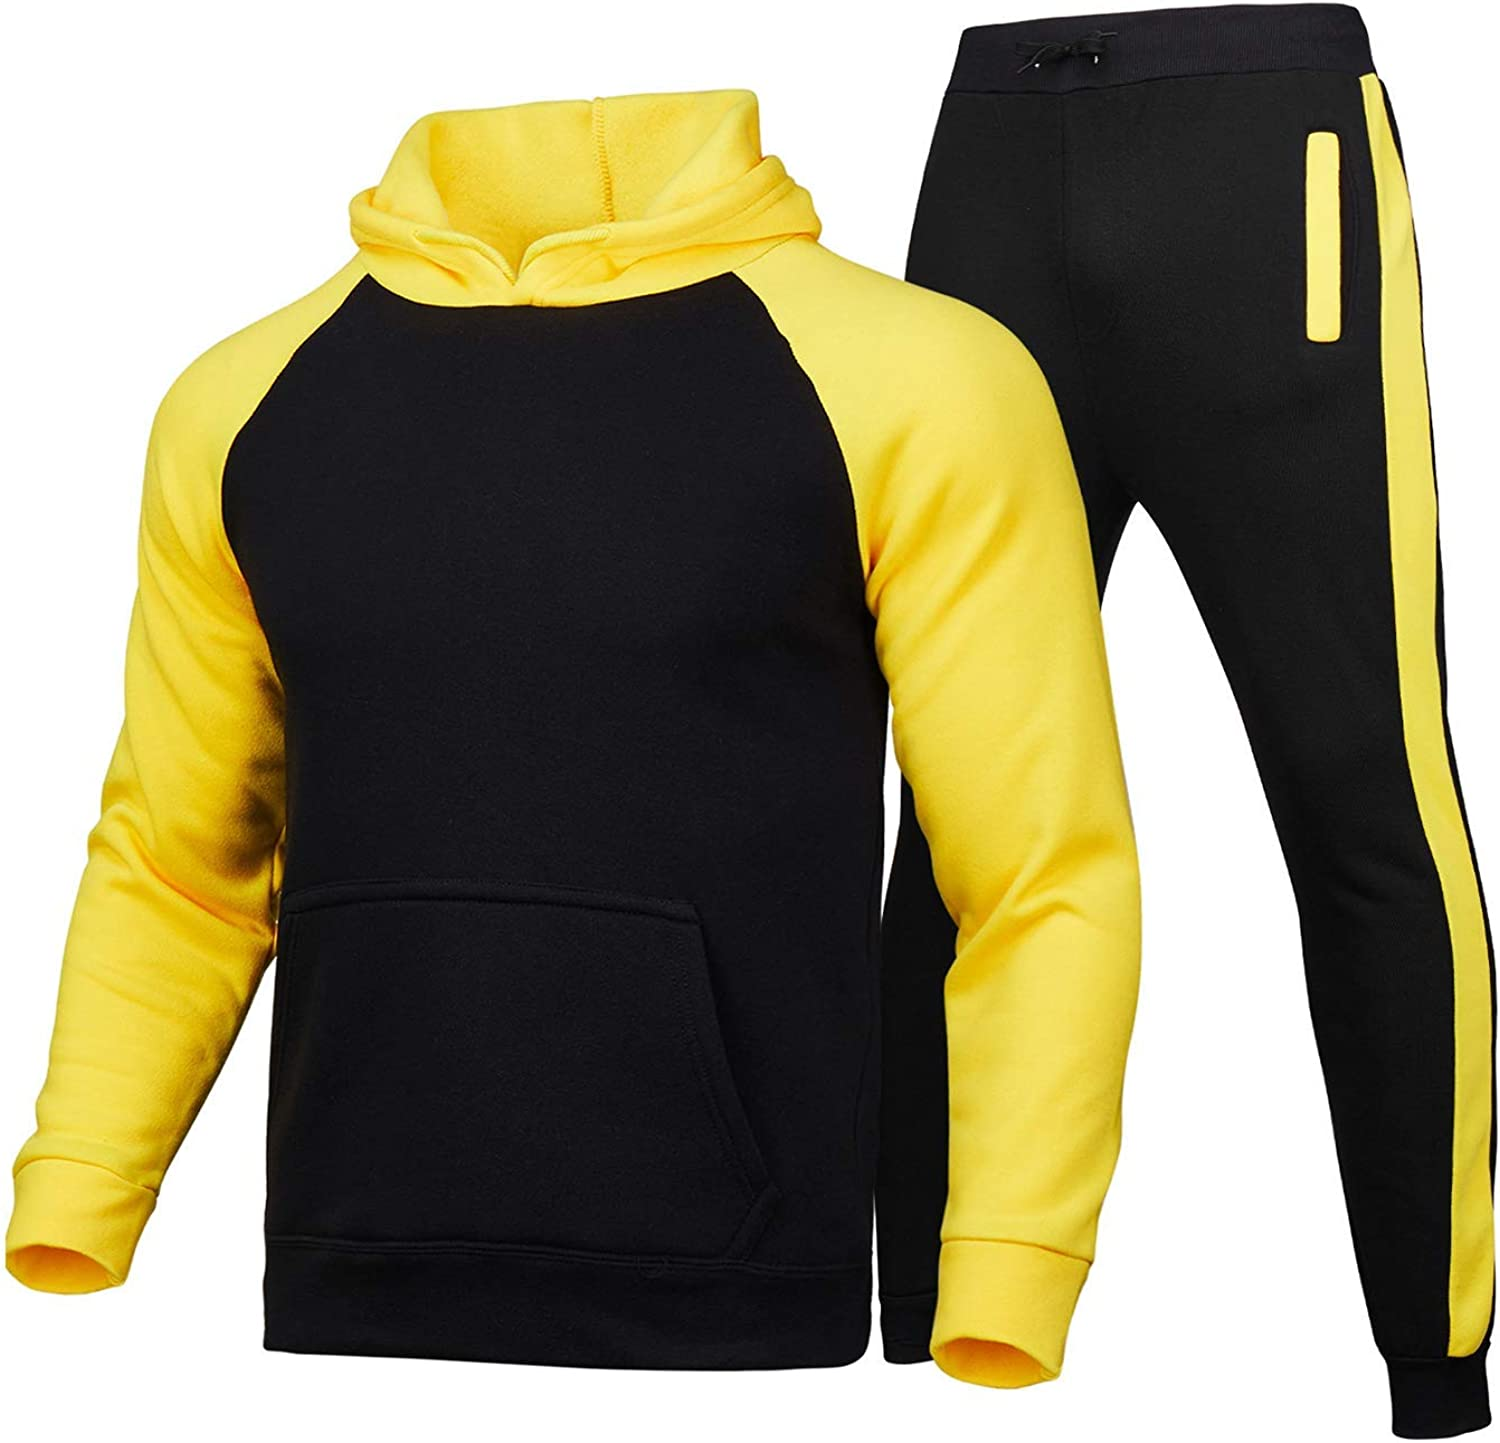 Prubensic Free shipping New Men's Long Sleeve Jogging Sports Casual Max 68% OFF Suit Com Suits